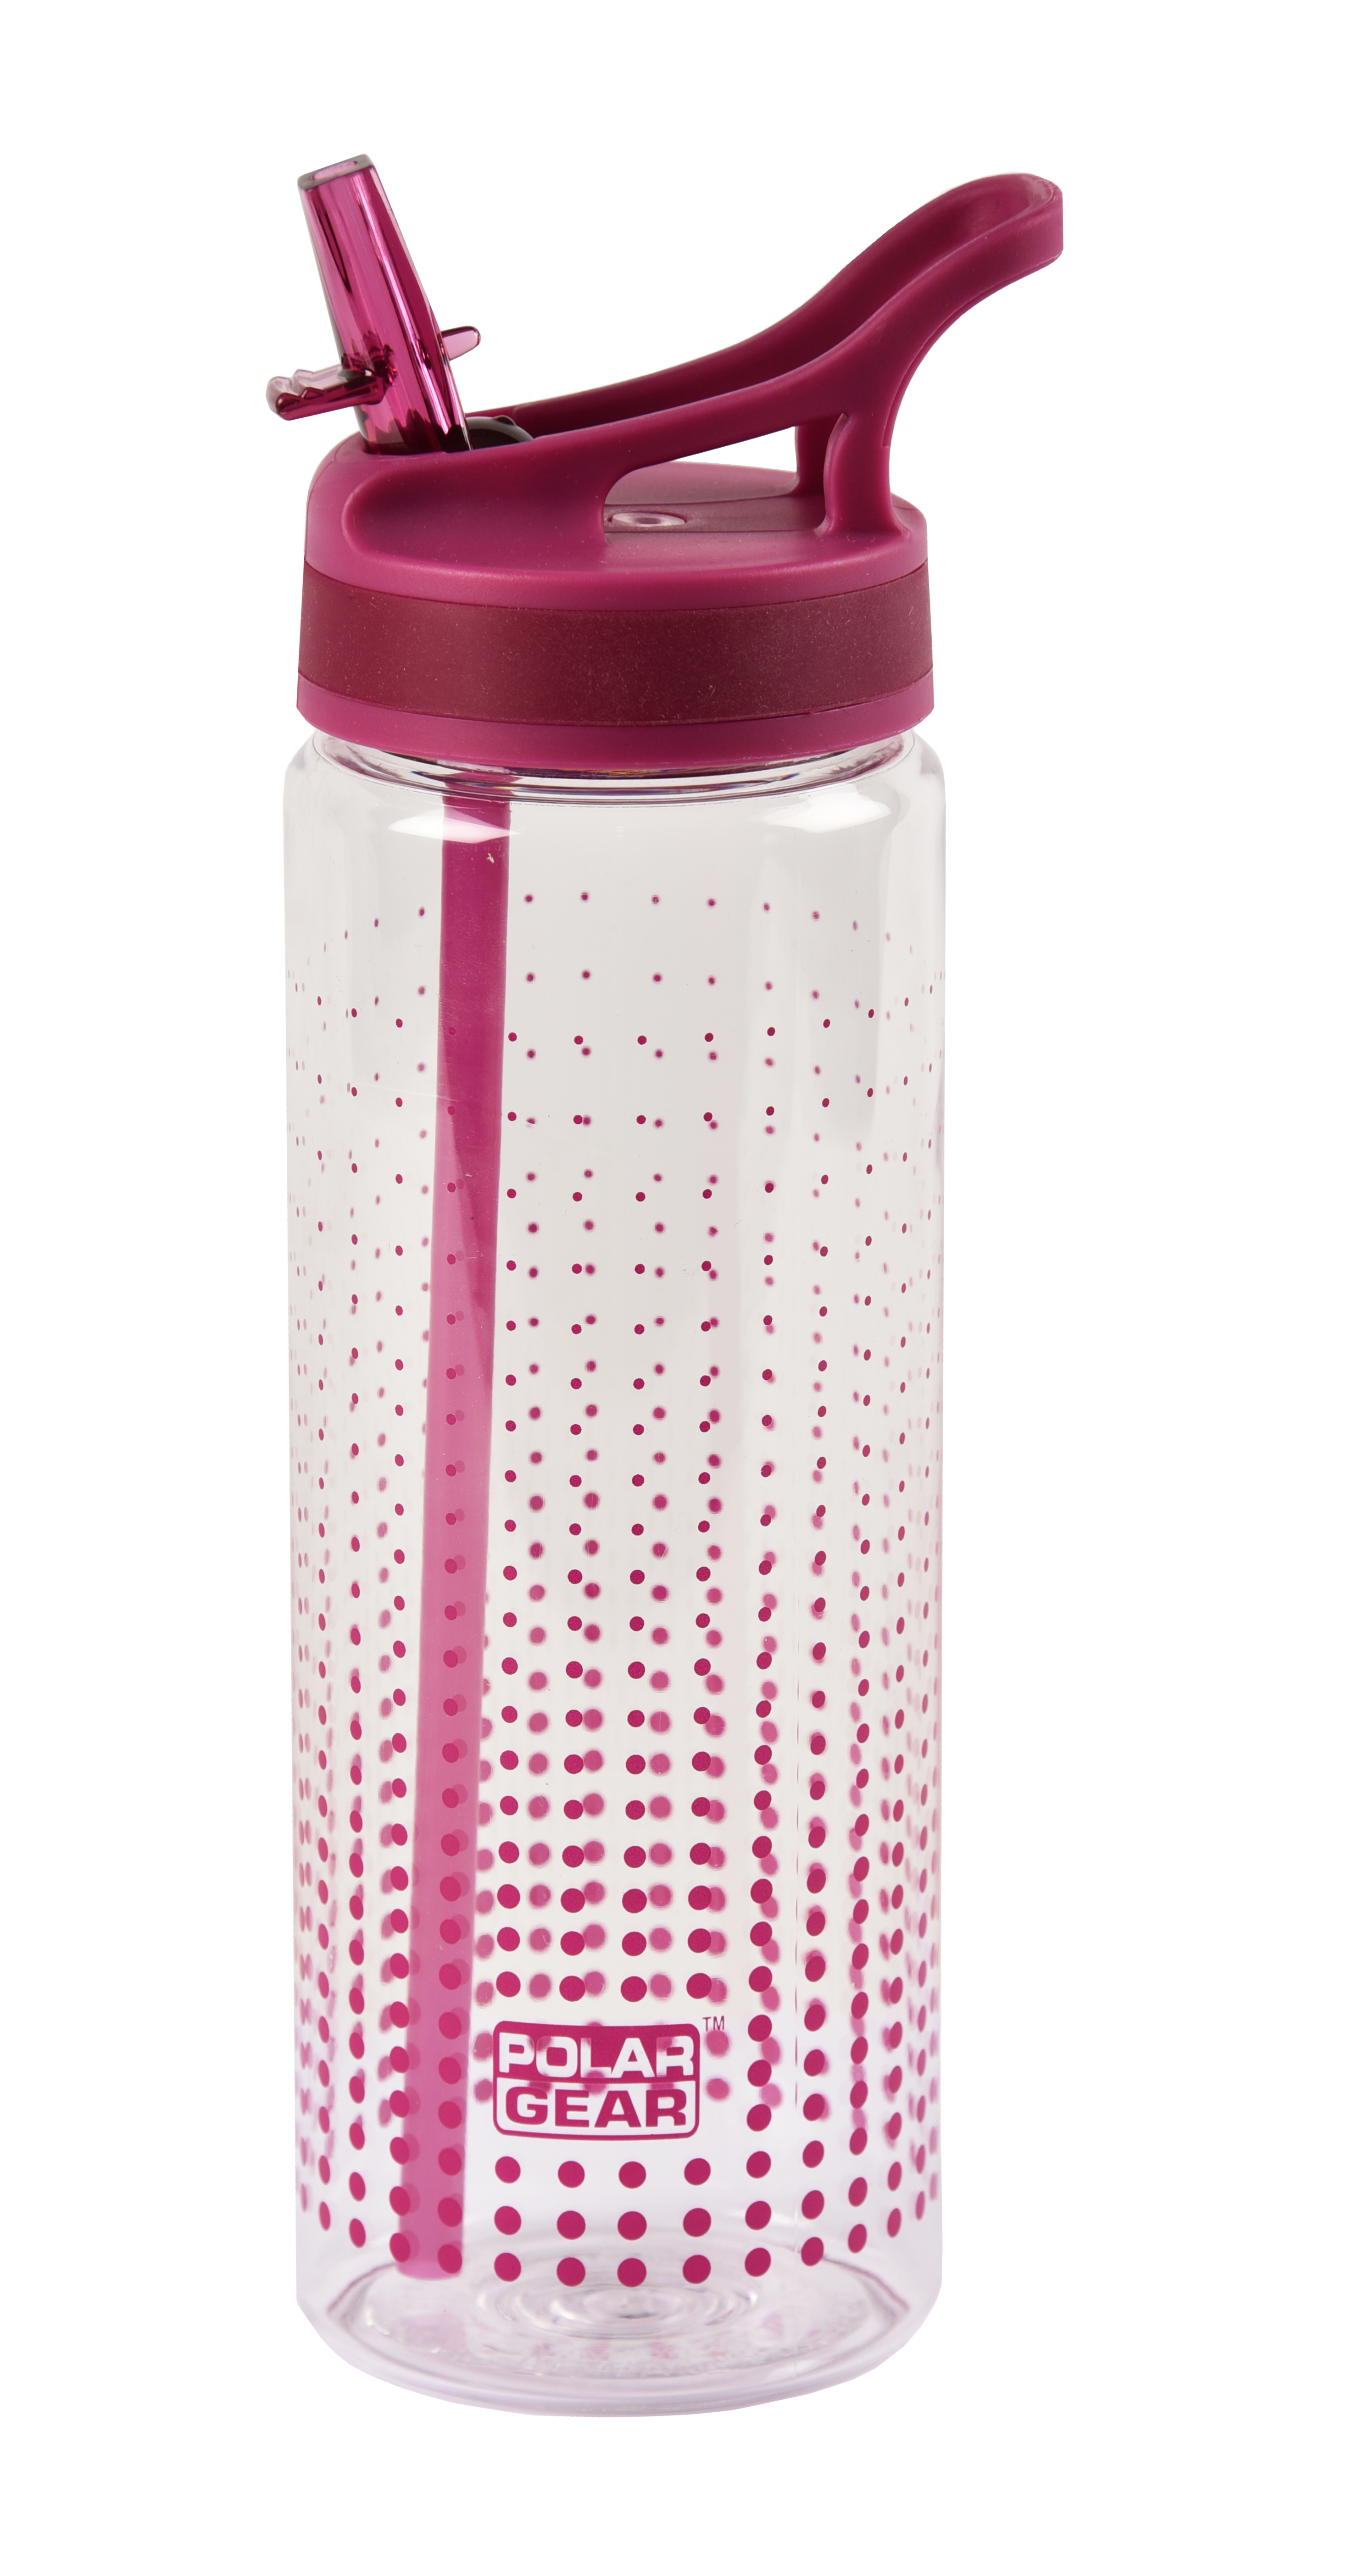 3baccb97c4  Magrudy.com - Water Bottles